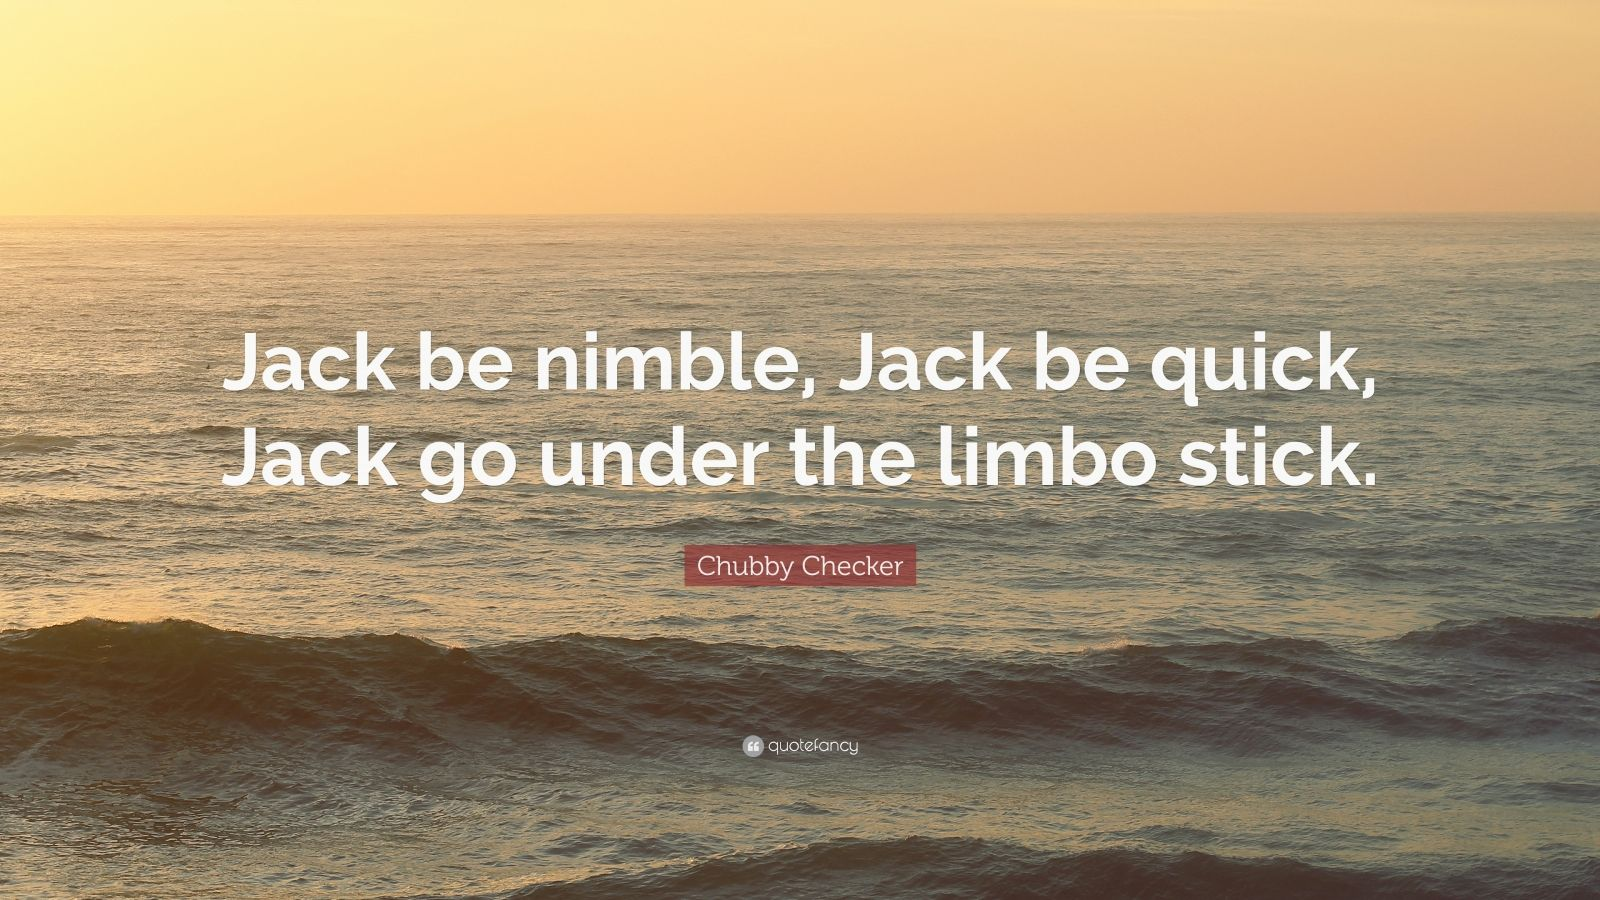 Chubby Checker Quote Jack Be Nimble Jack Be Quick Jack